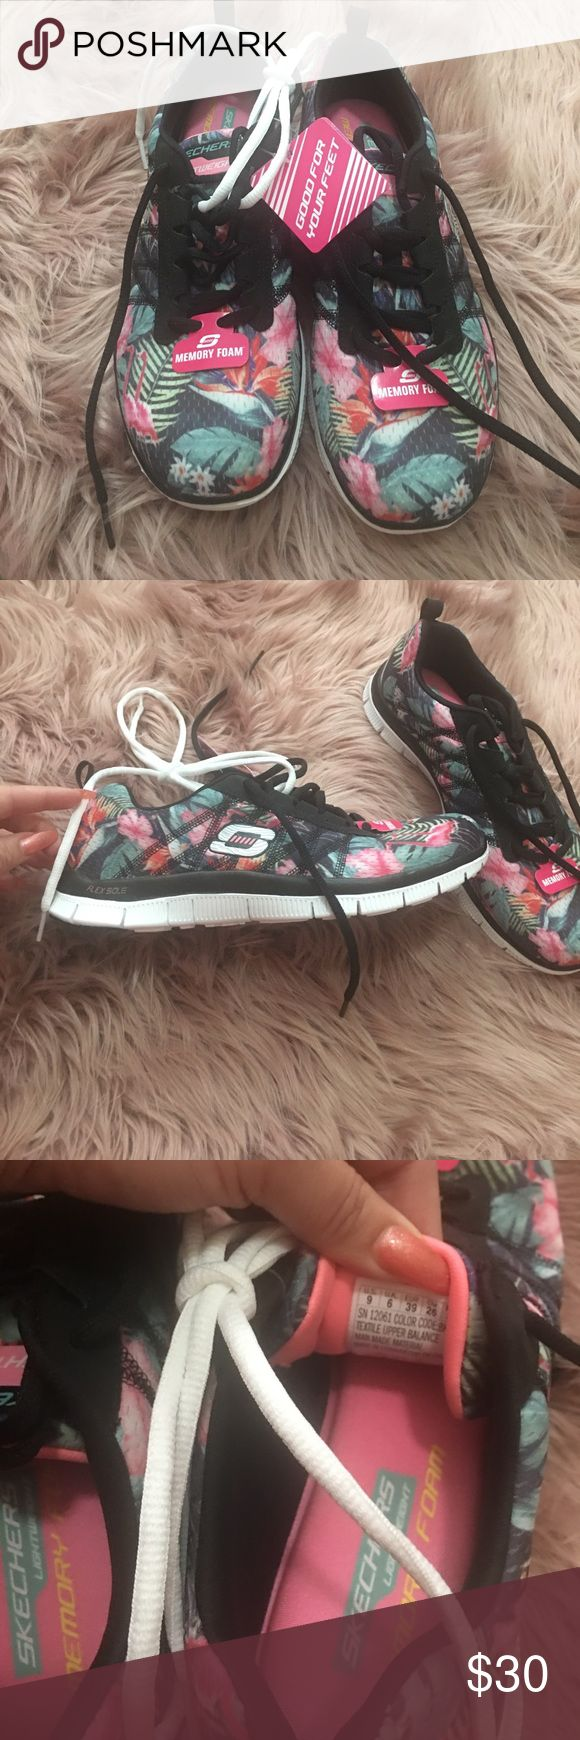 Sketchers Memory Foam Sneakers BNWT! Box is not included! Super cute Floral print! Perfect for summer! Skechers Shoes Sneakers